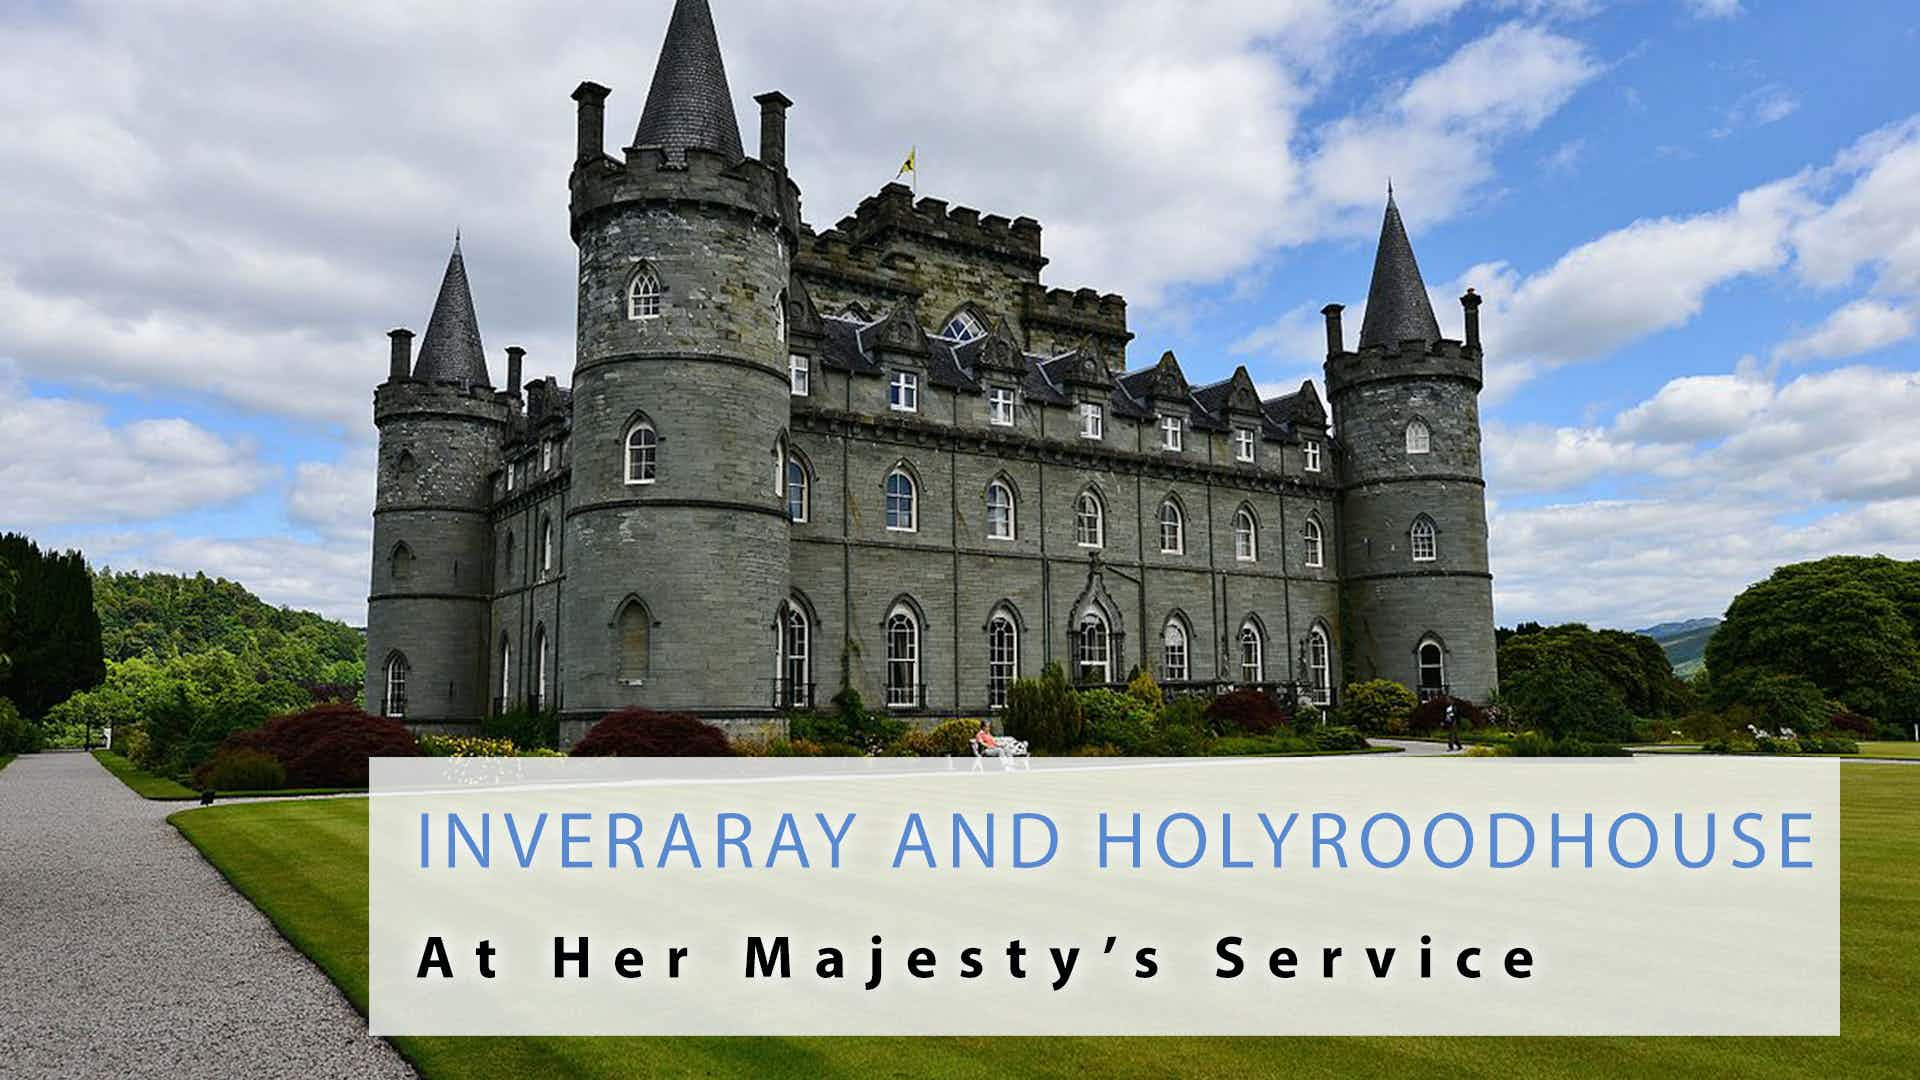 At Her Majesty's Service: Inveraray and Holyroodhouse Holyroodhouse